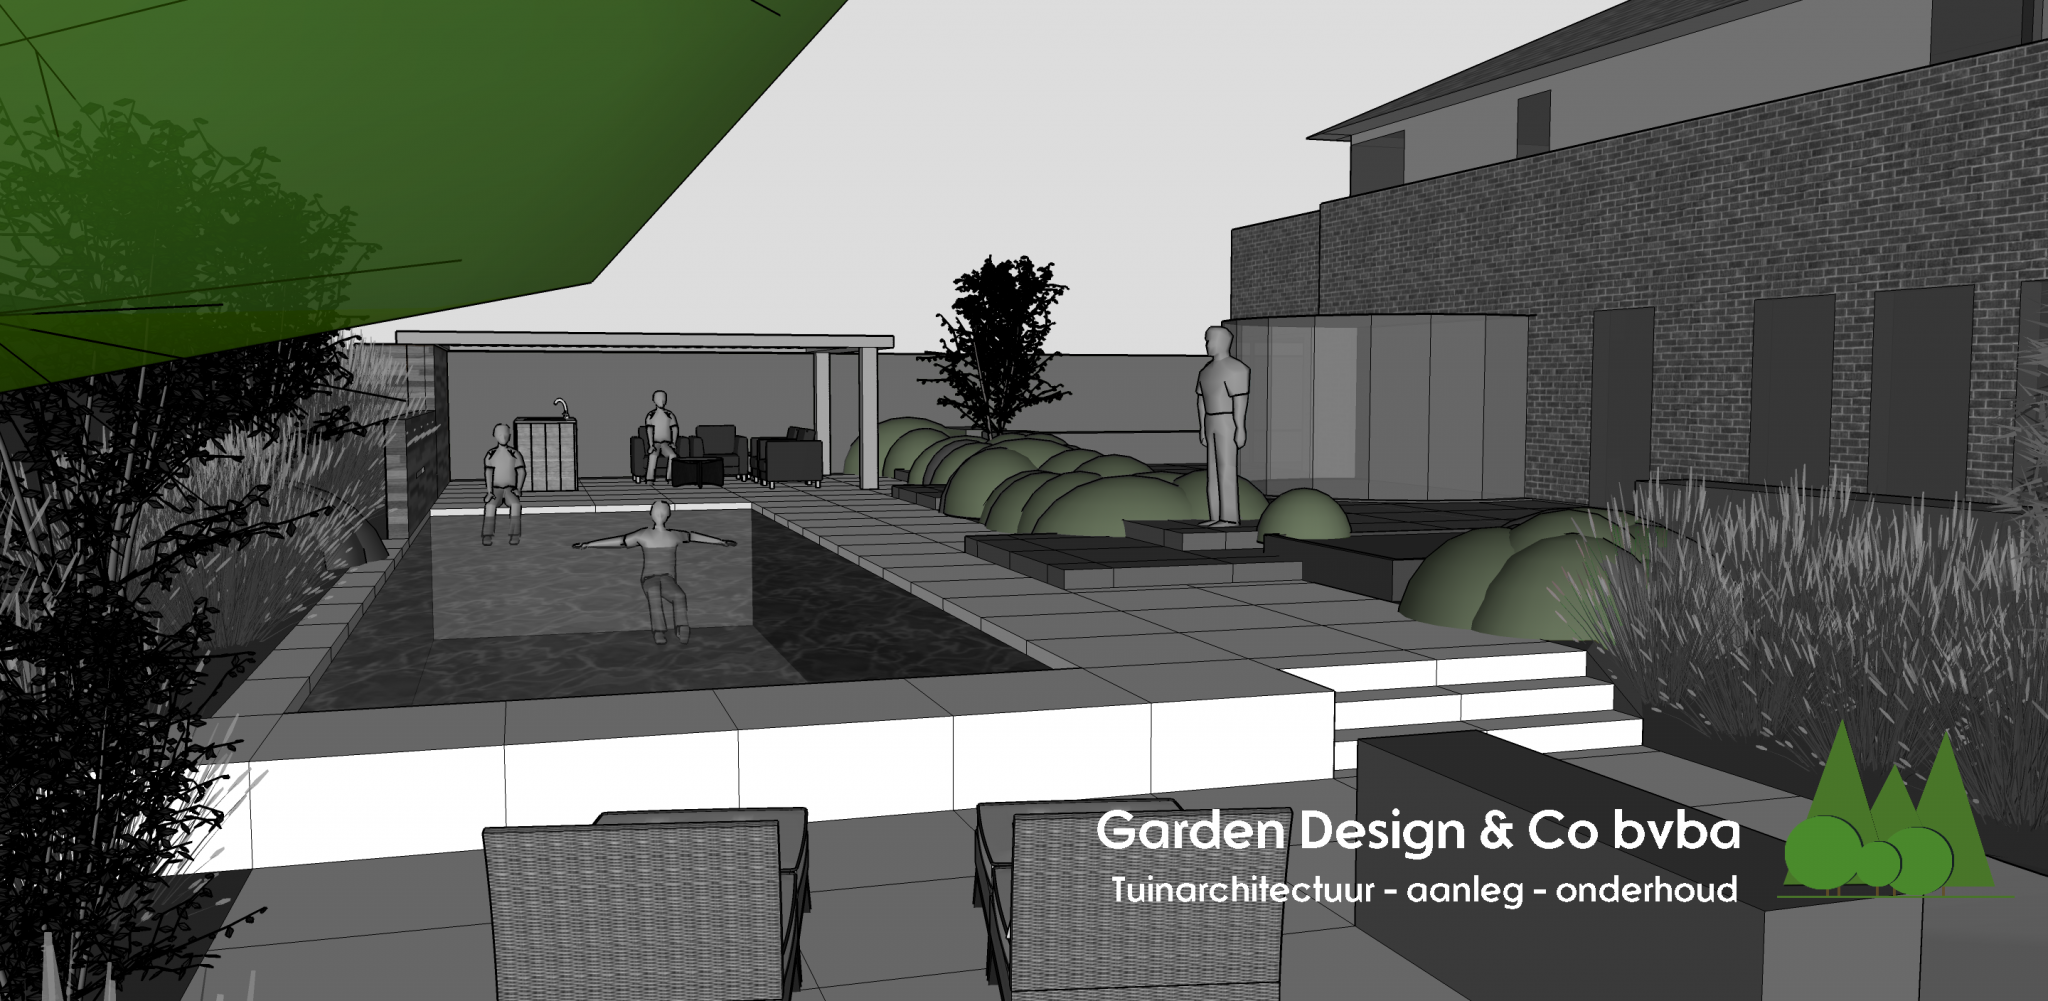 Tuinarchitectuur - Garden Design